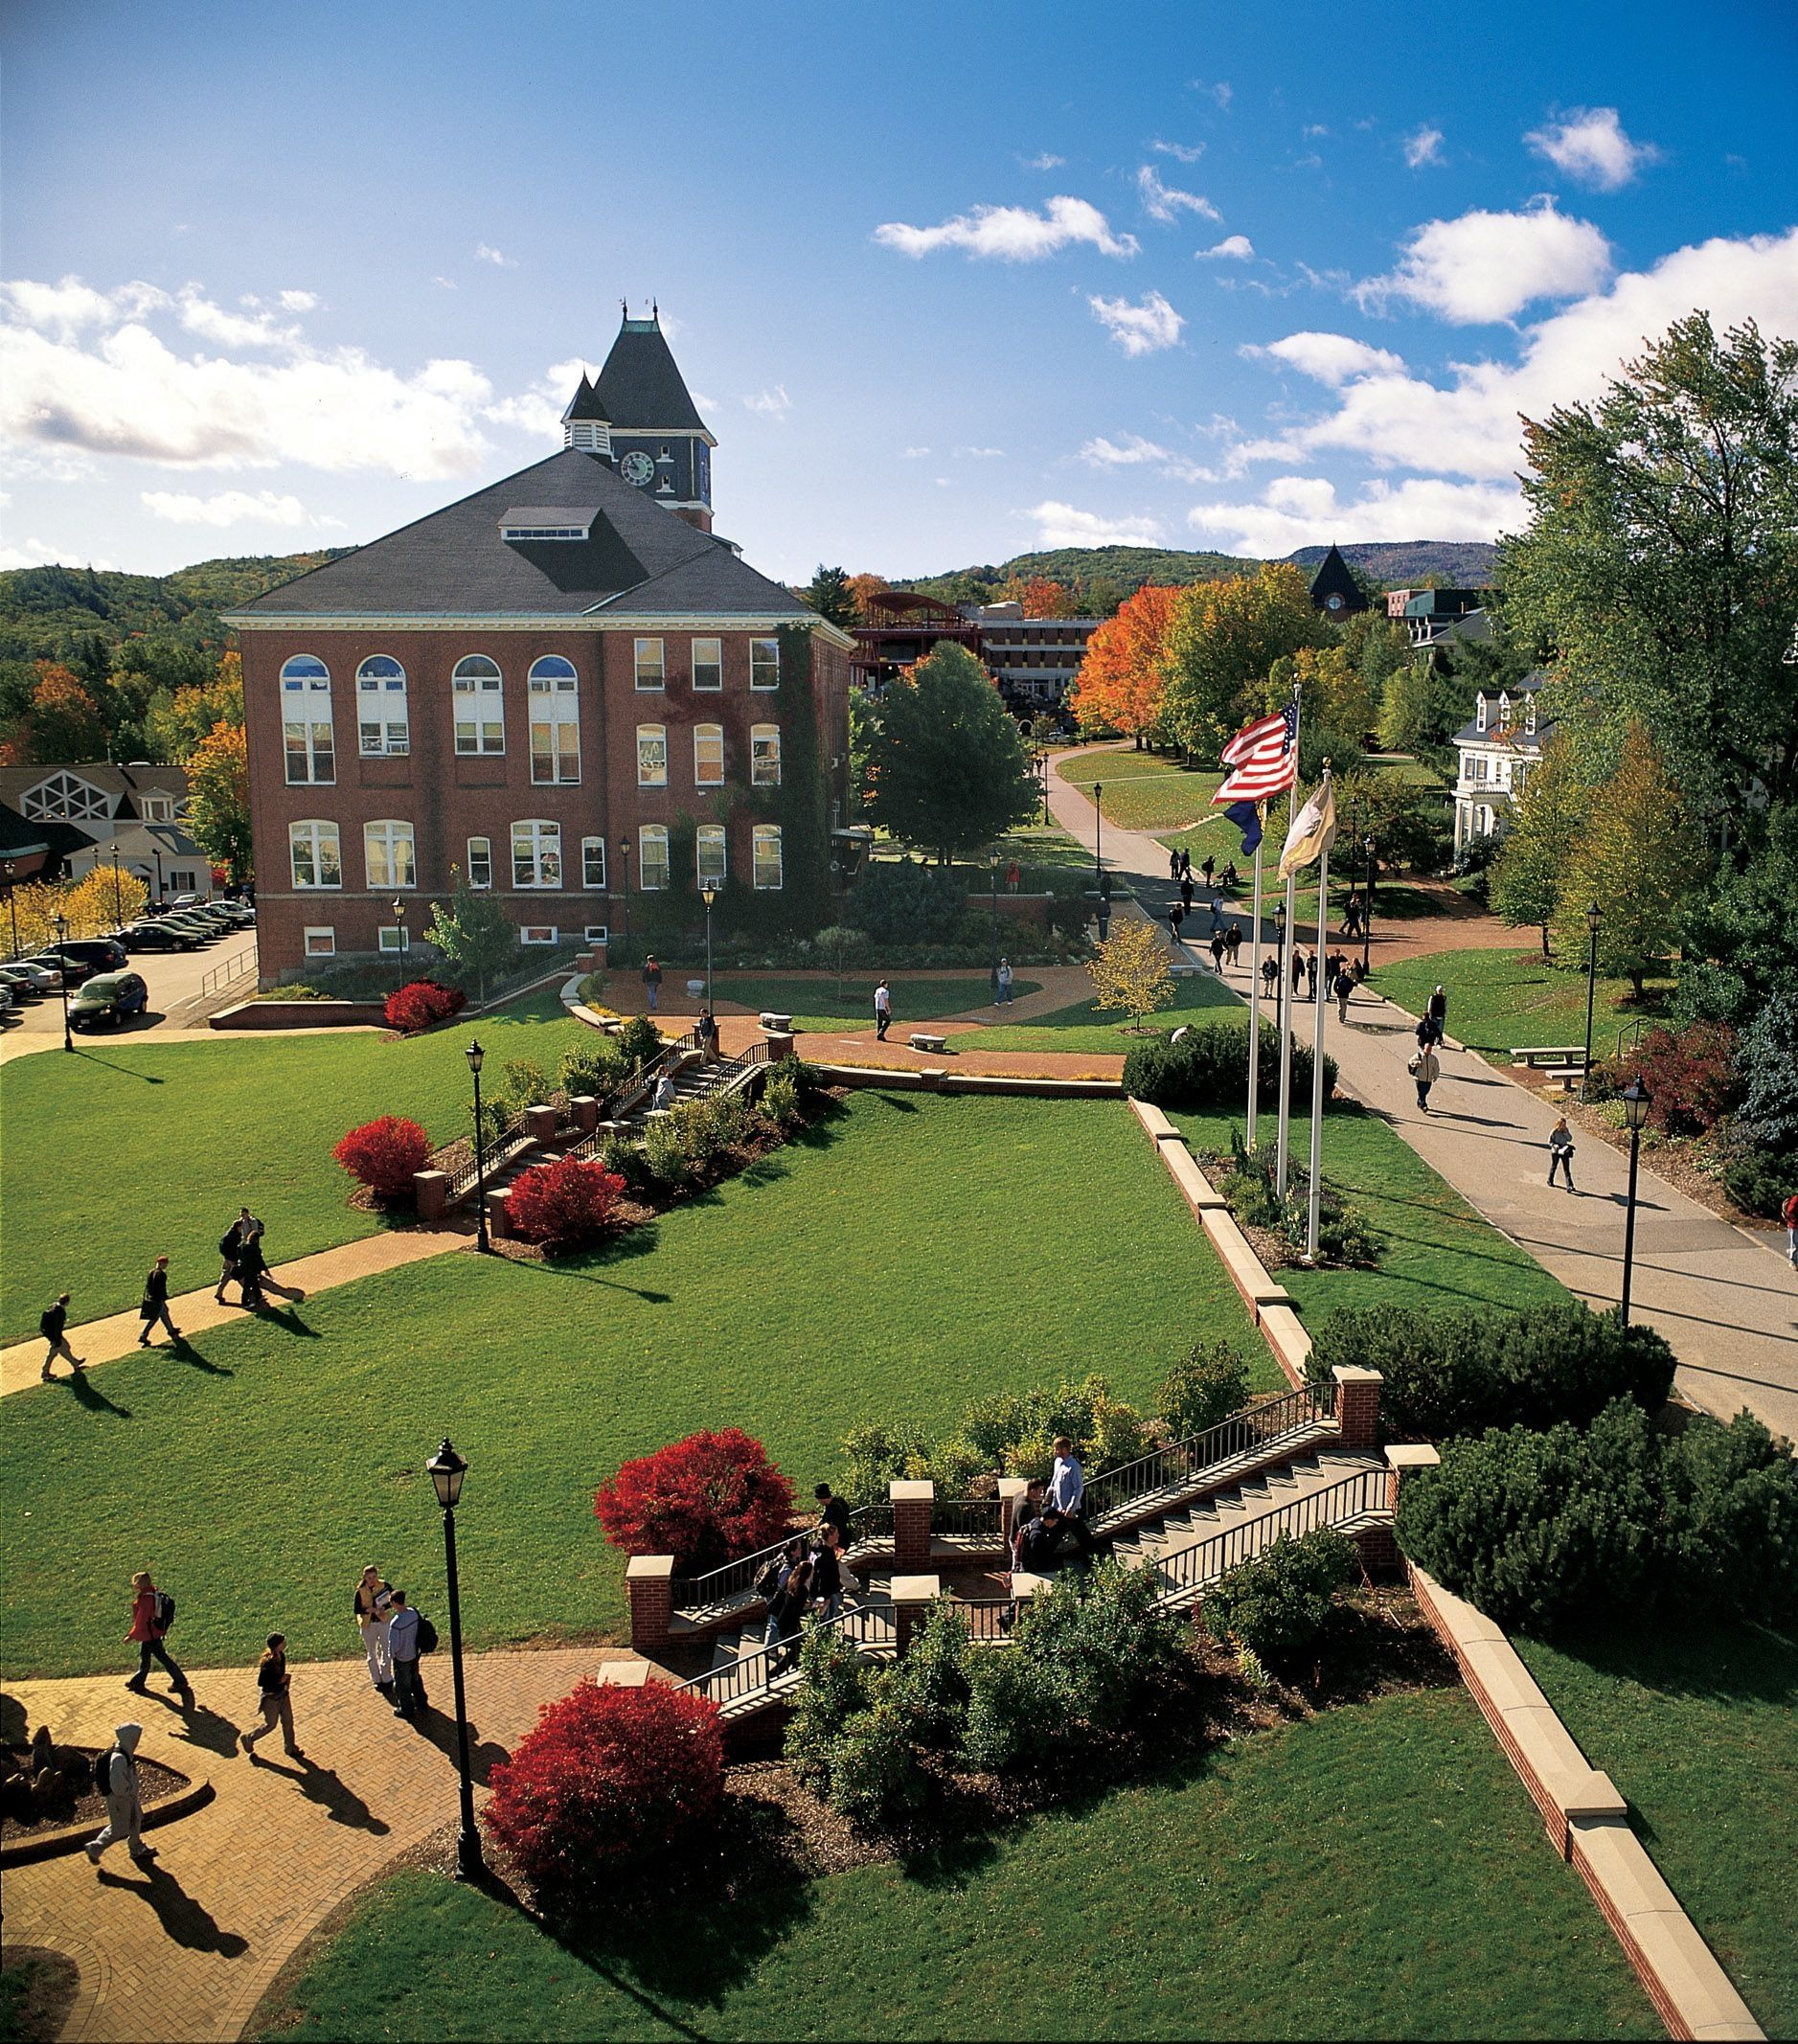 Apartments In Maine New Hampshire: Plymouth State University, My Sister's Alma Mater, What A